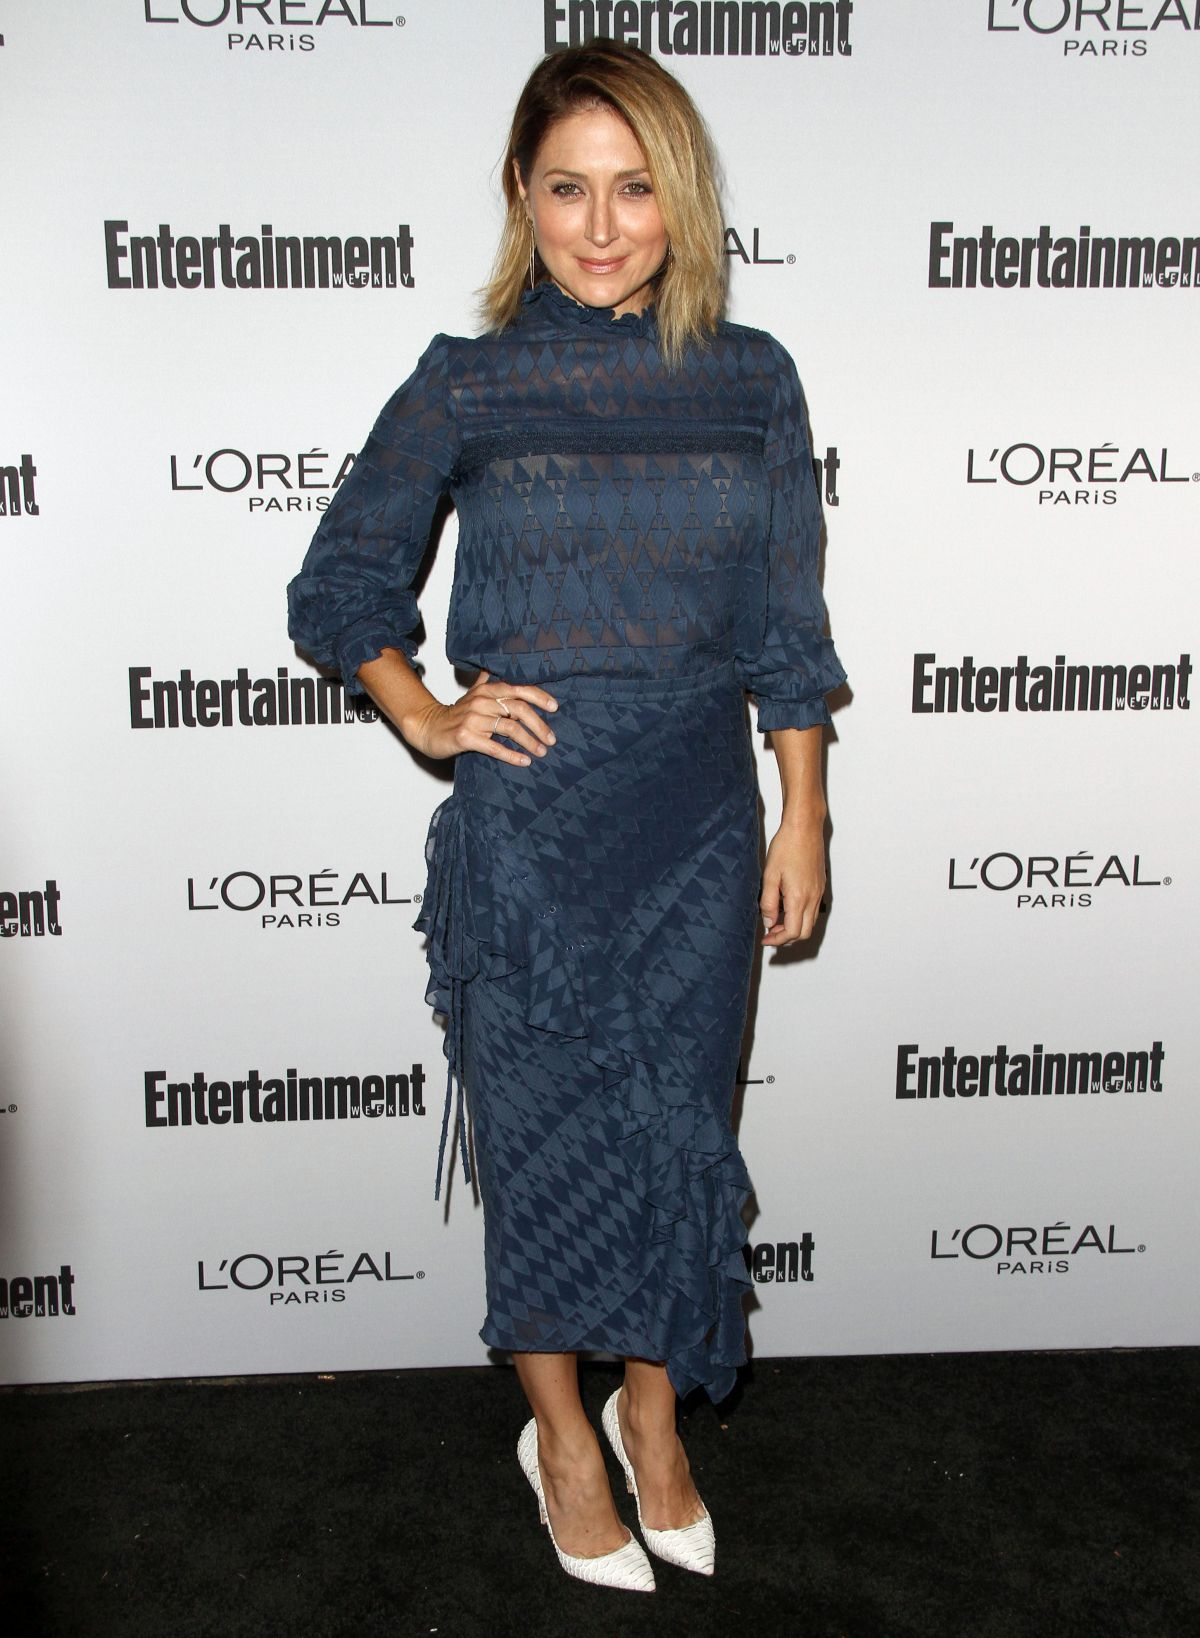 SASHA ALEXANDER at Entertainment Weekly 2016 Pre-emmy Party in Los Angeles 09/16/2016